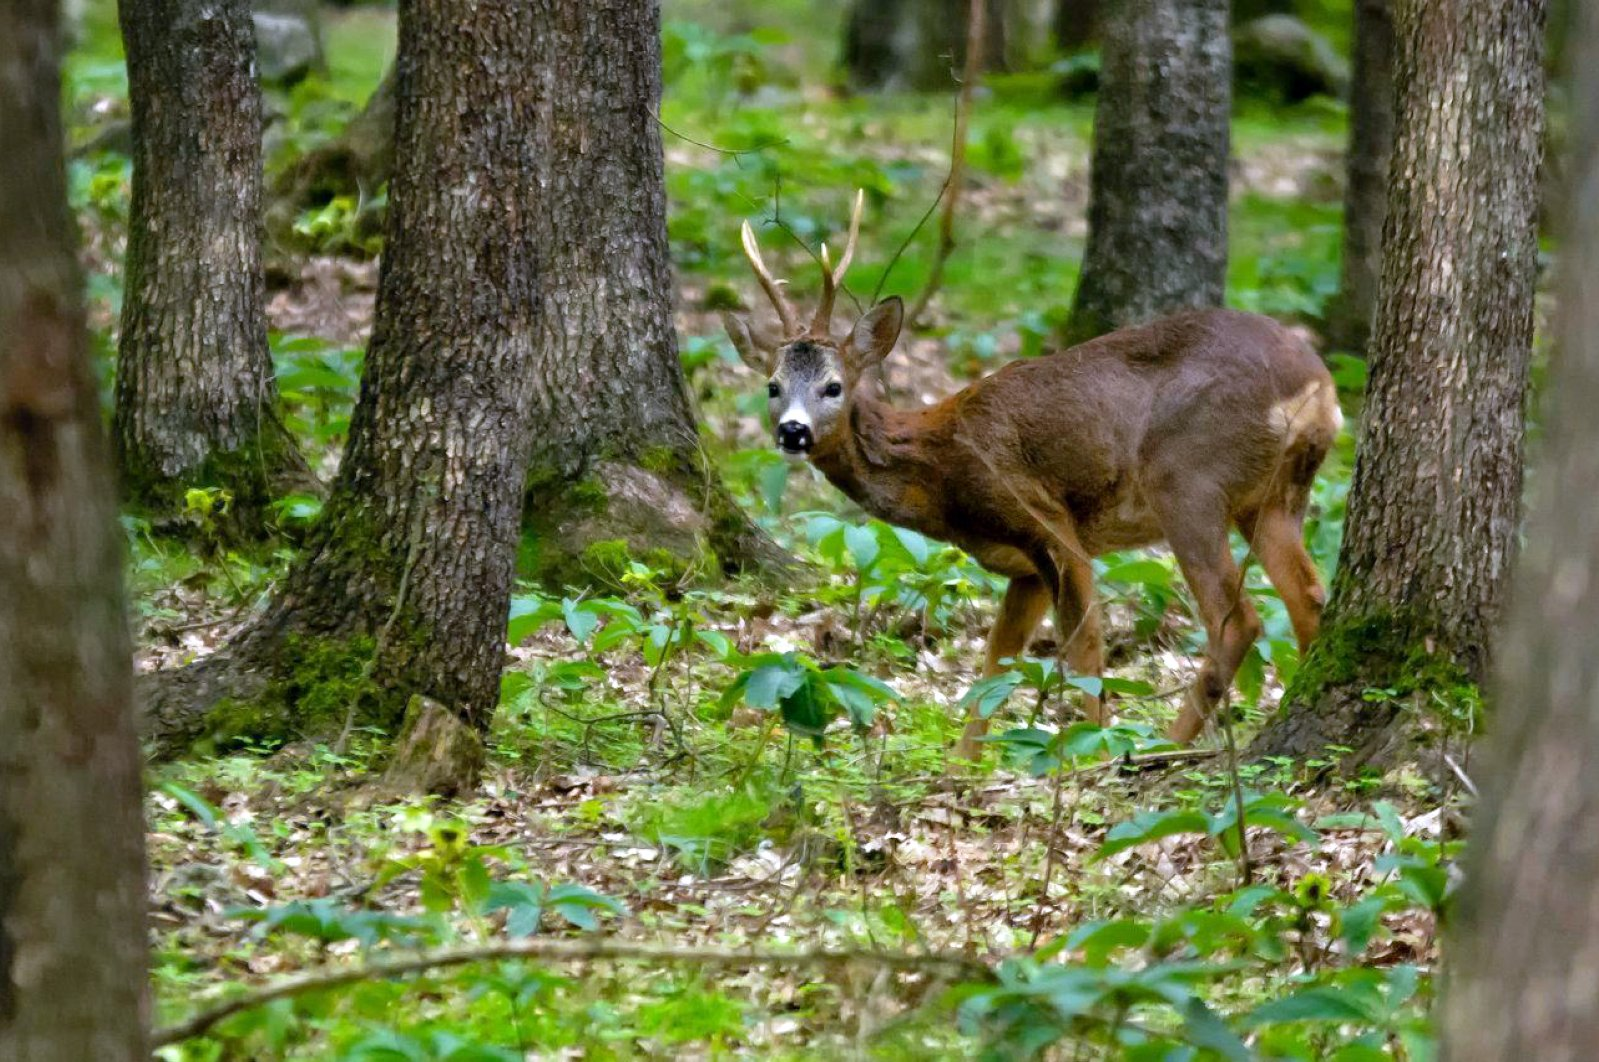 A fallow deer walks in the forest in their breeding ground, in Antalya, Turkey, May 7, 2020. (DHA Photo)